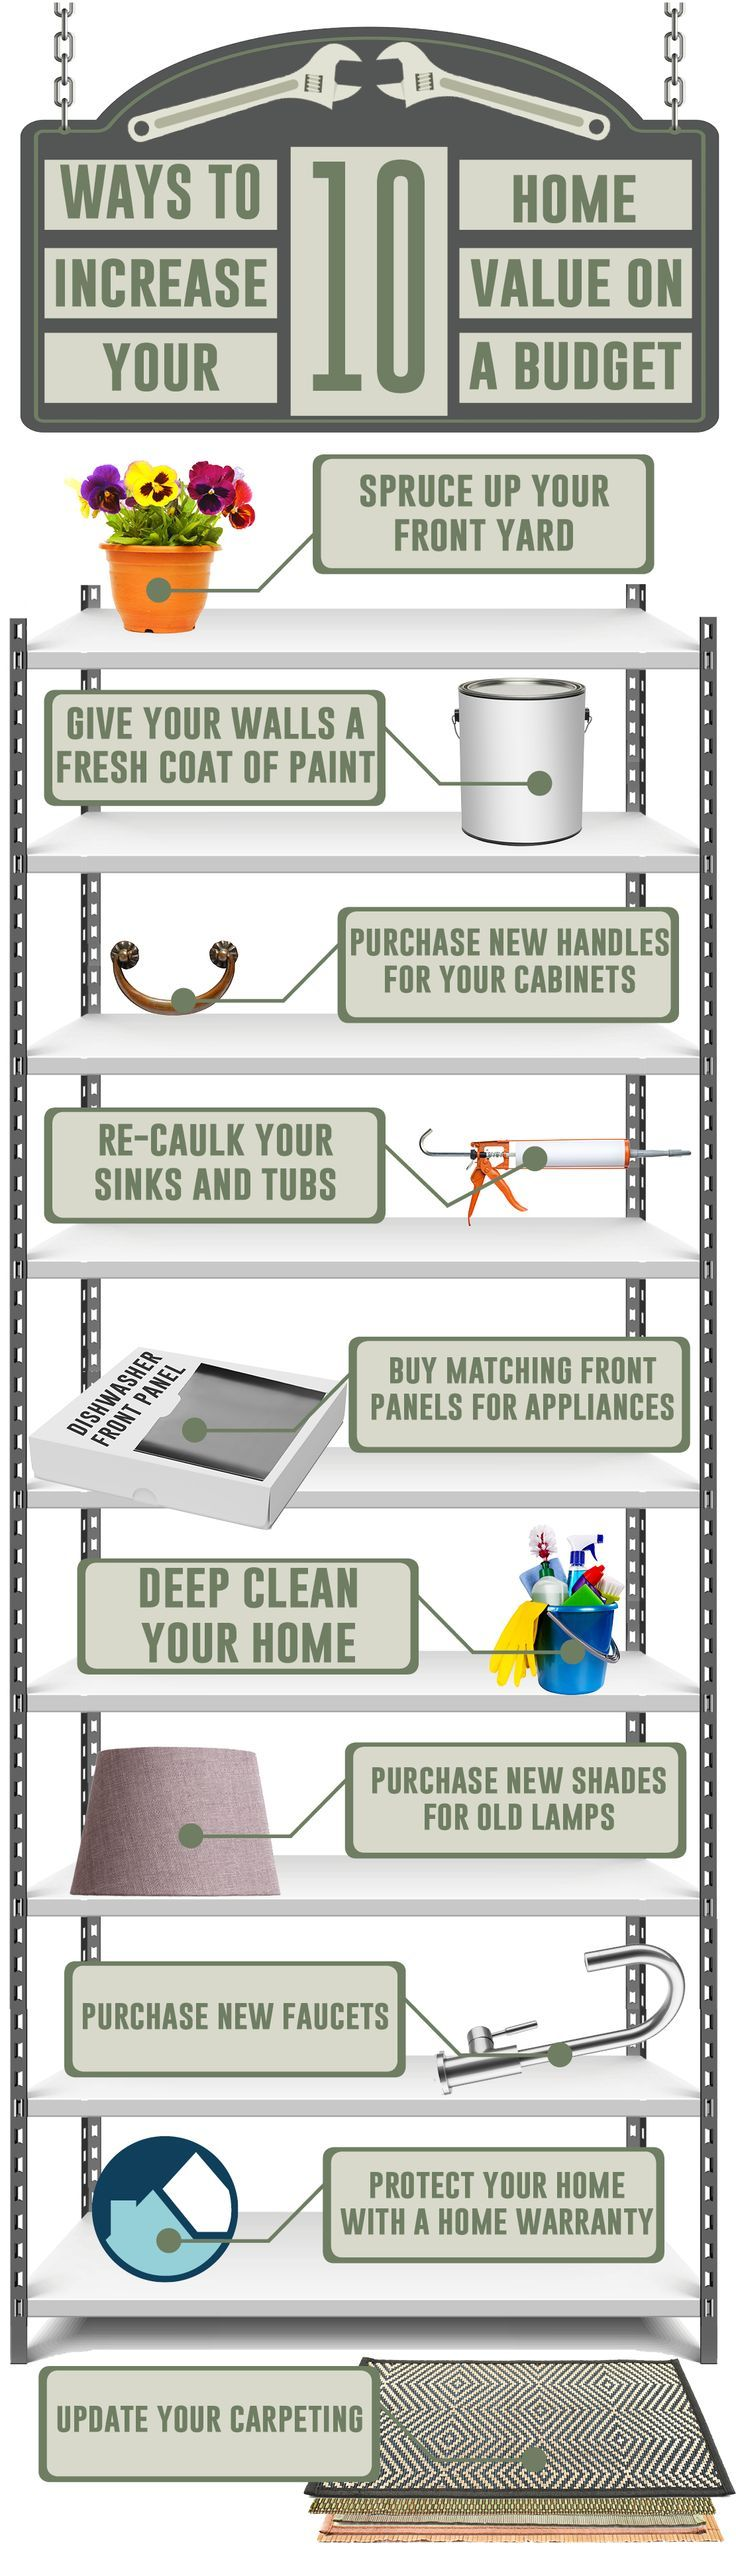 Pass along these tips to your home buyers - might mean a higher sale prices and commission for you.